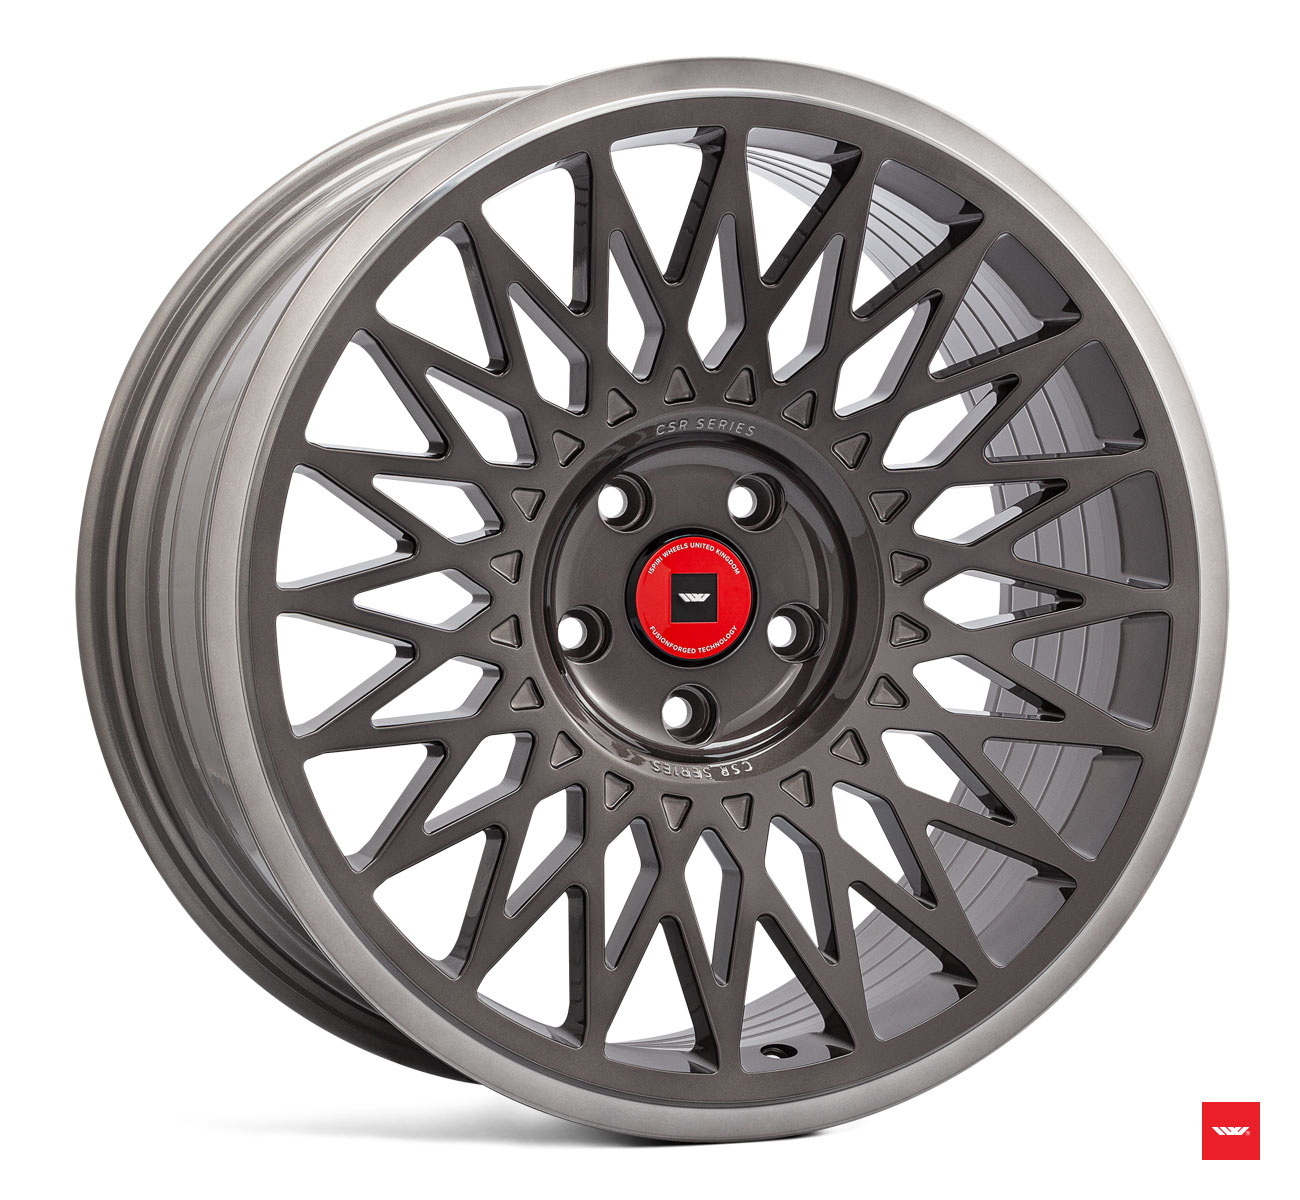 "NEW 18"" ISPIRI CSR-FF4 ALLOY WHEELS IN CARBON GREY BRUSHED WITH WIDER 9.5"" REARS et45/45"